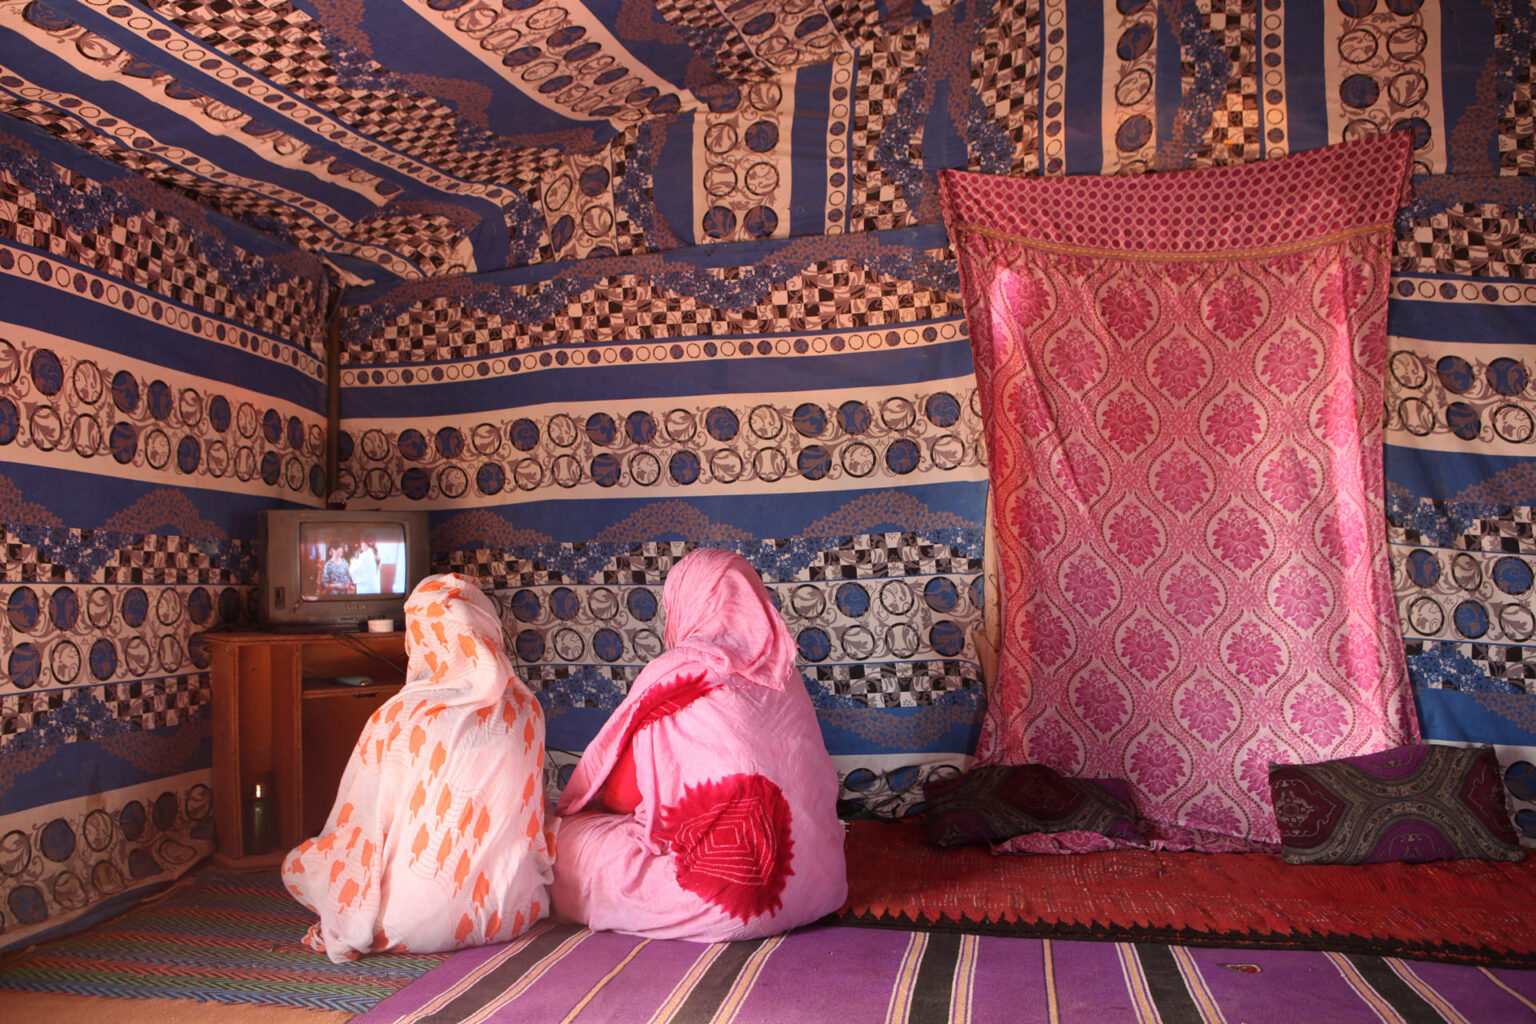 Private tent, Laayoune Refugee Camp, Algeria, 2015